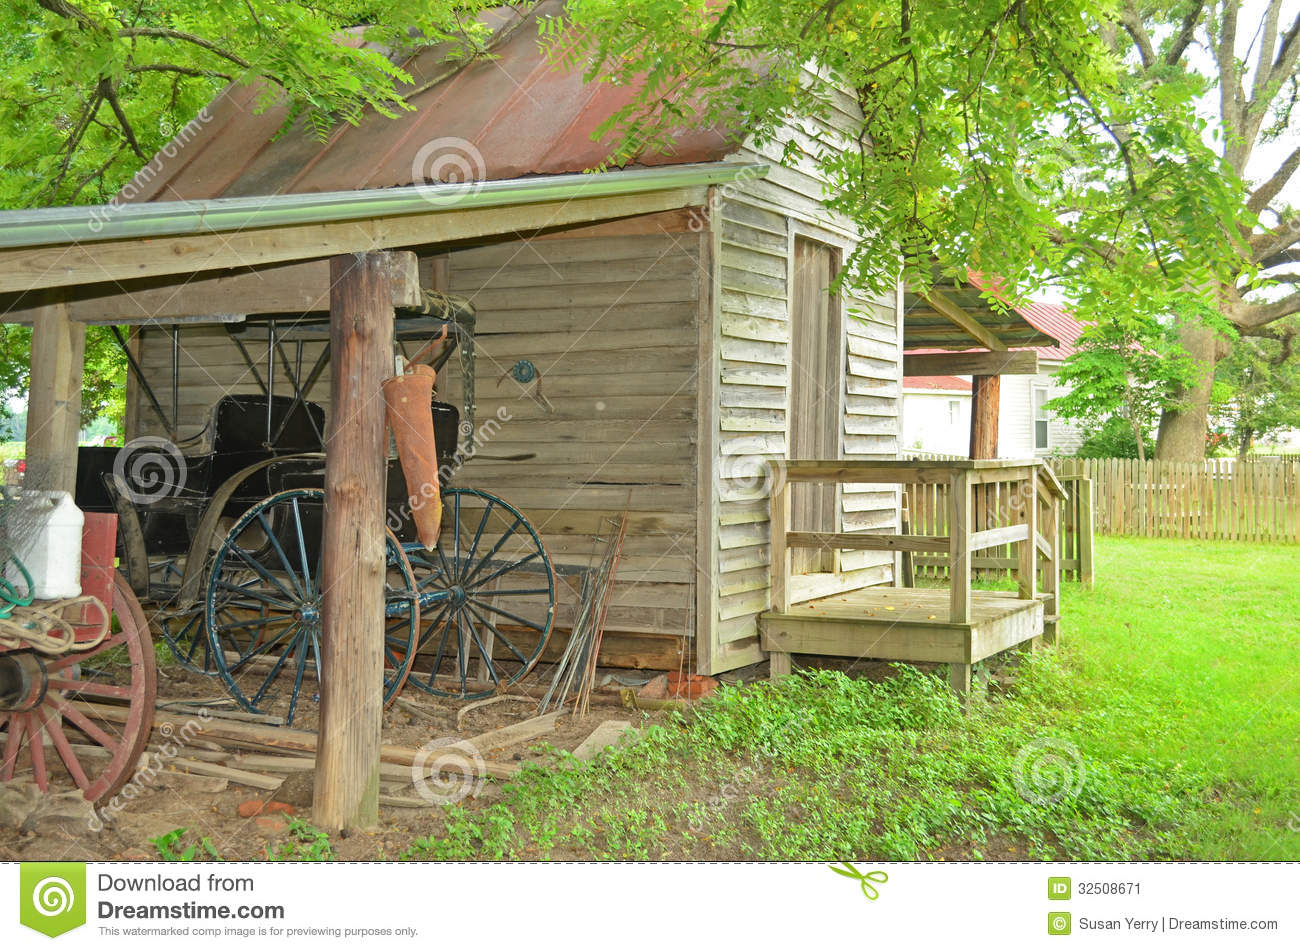 Small Old Wooden Shed With Shelter Covering A Antique Horse Carriage